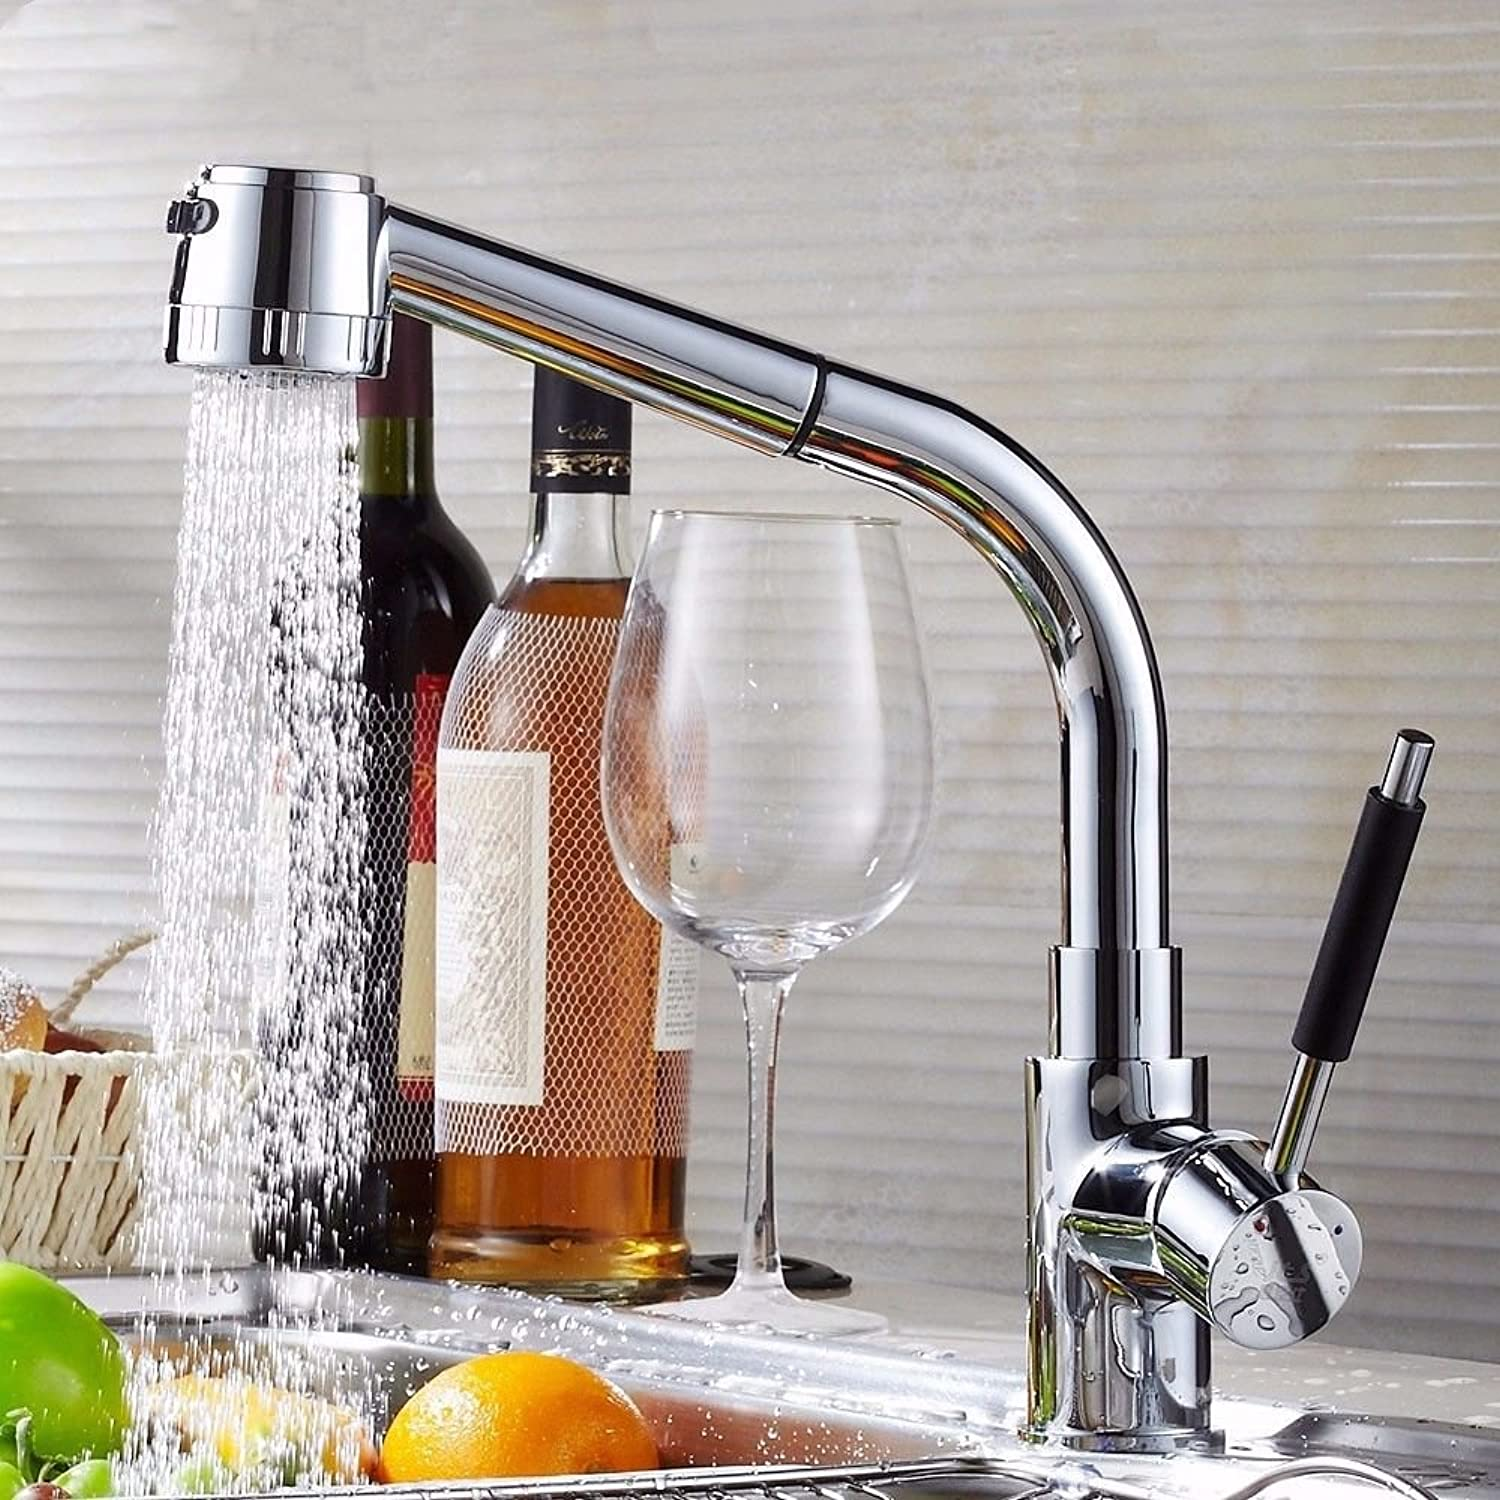 Lalaky Taps Faucet Kitchen Mixer Sink Waterfall Bathroom Mixer Basin Mixer Tap for Kitchen Bathroom and Washroom Pull-Type Hot and Cold Copper Body Can Be redated